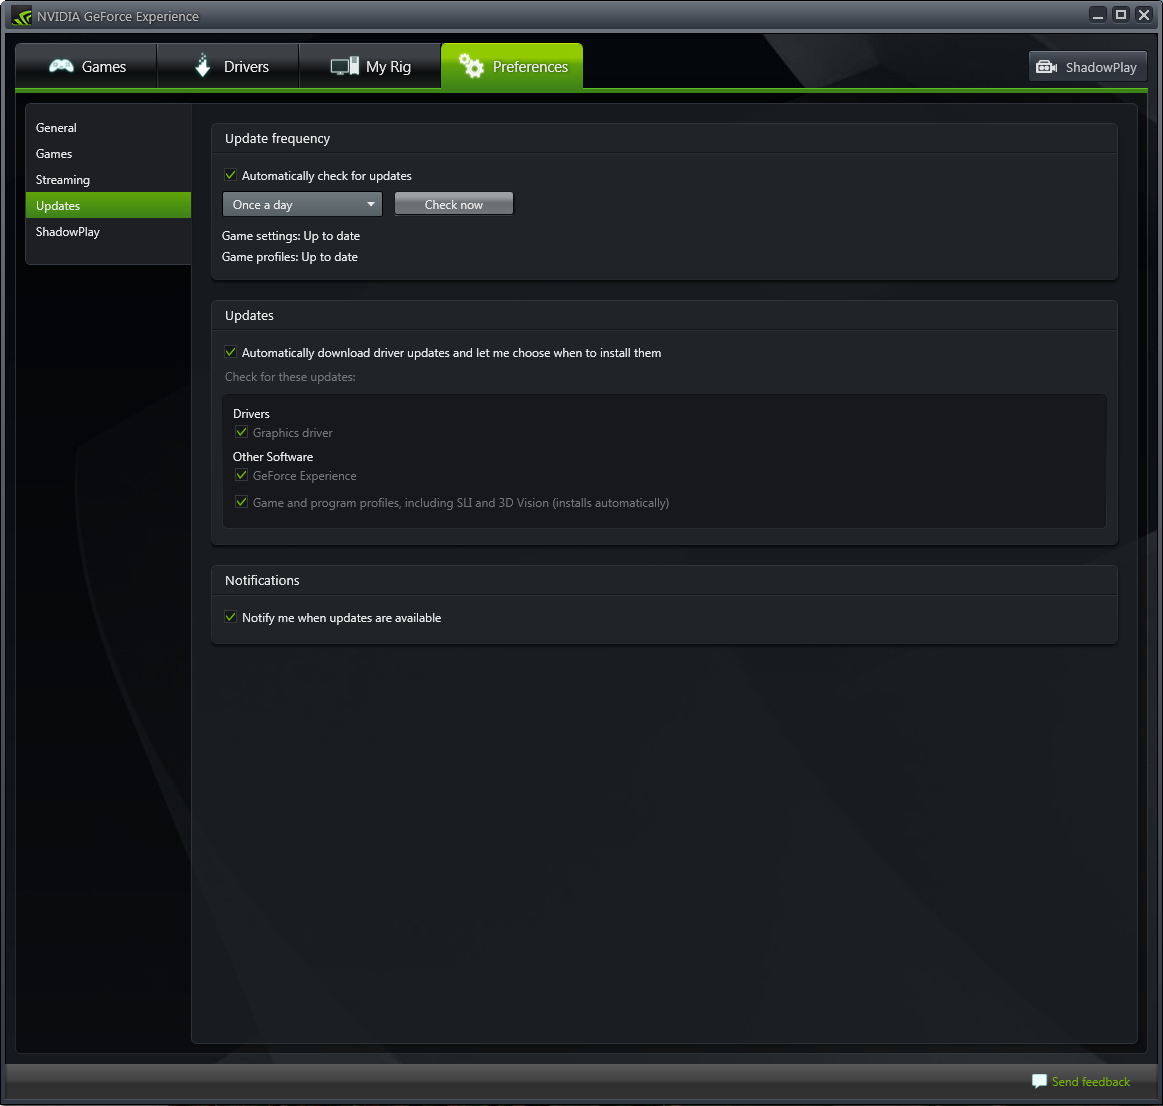 WatFile.com Download Free NVIDIA GeForce Experience Download